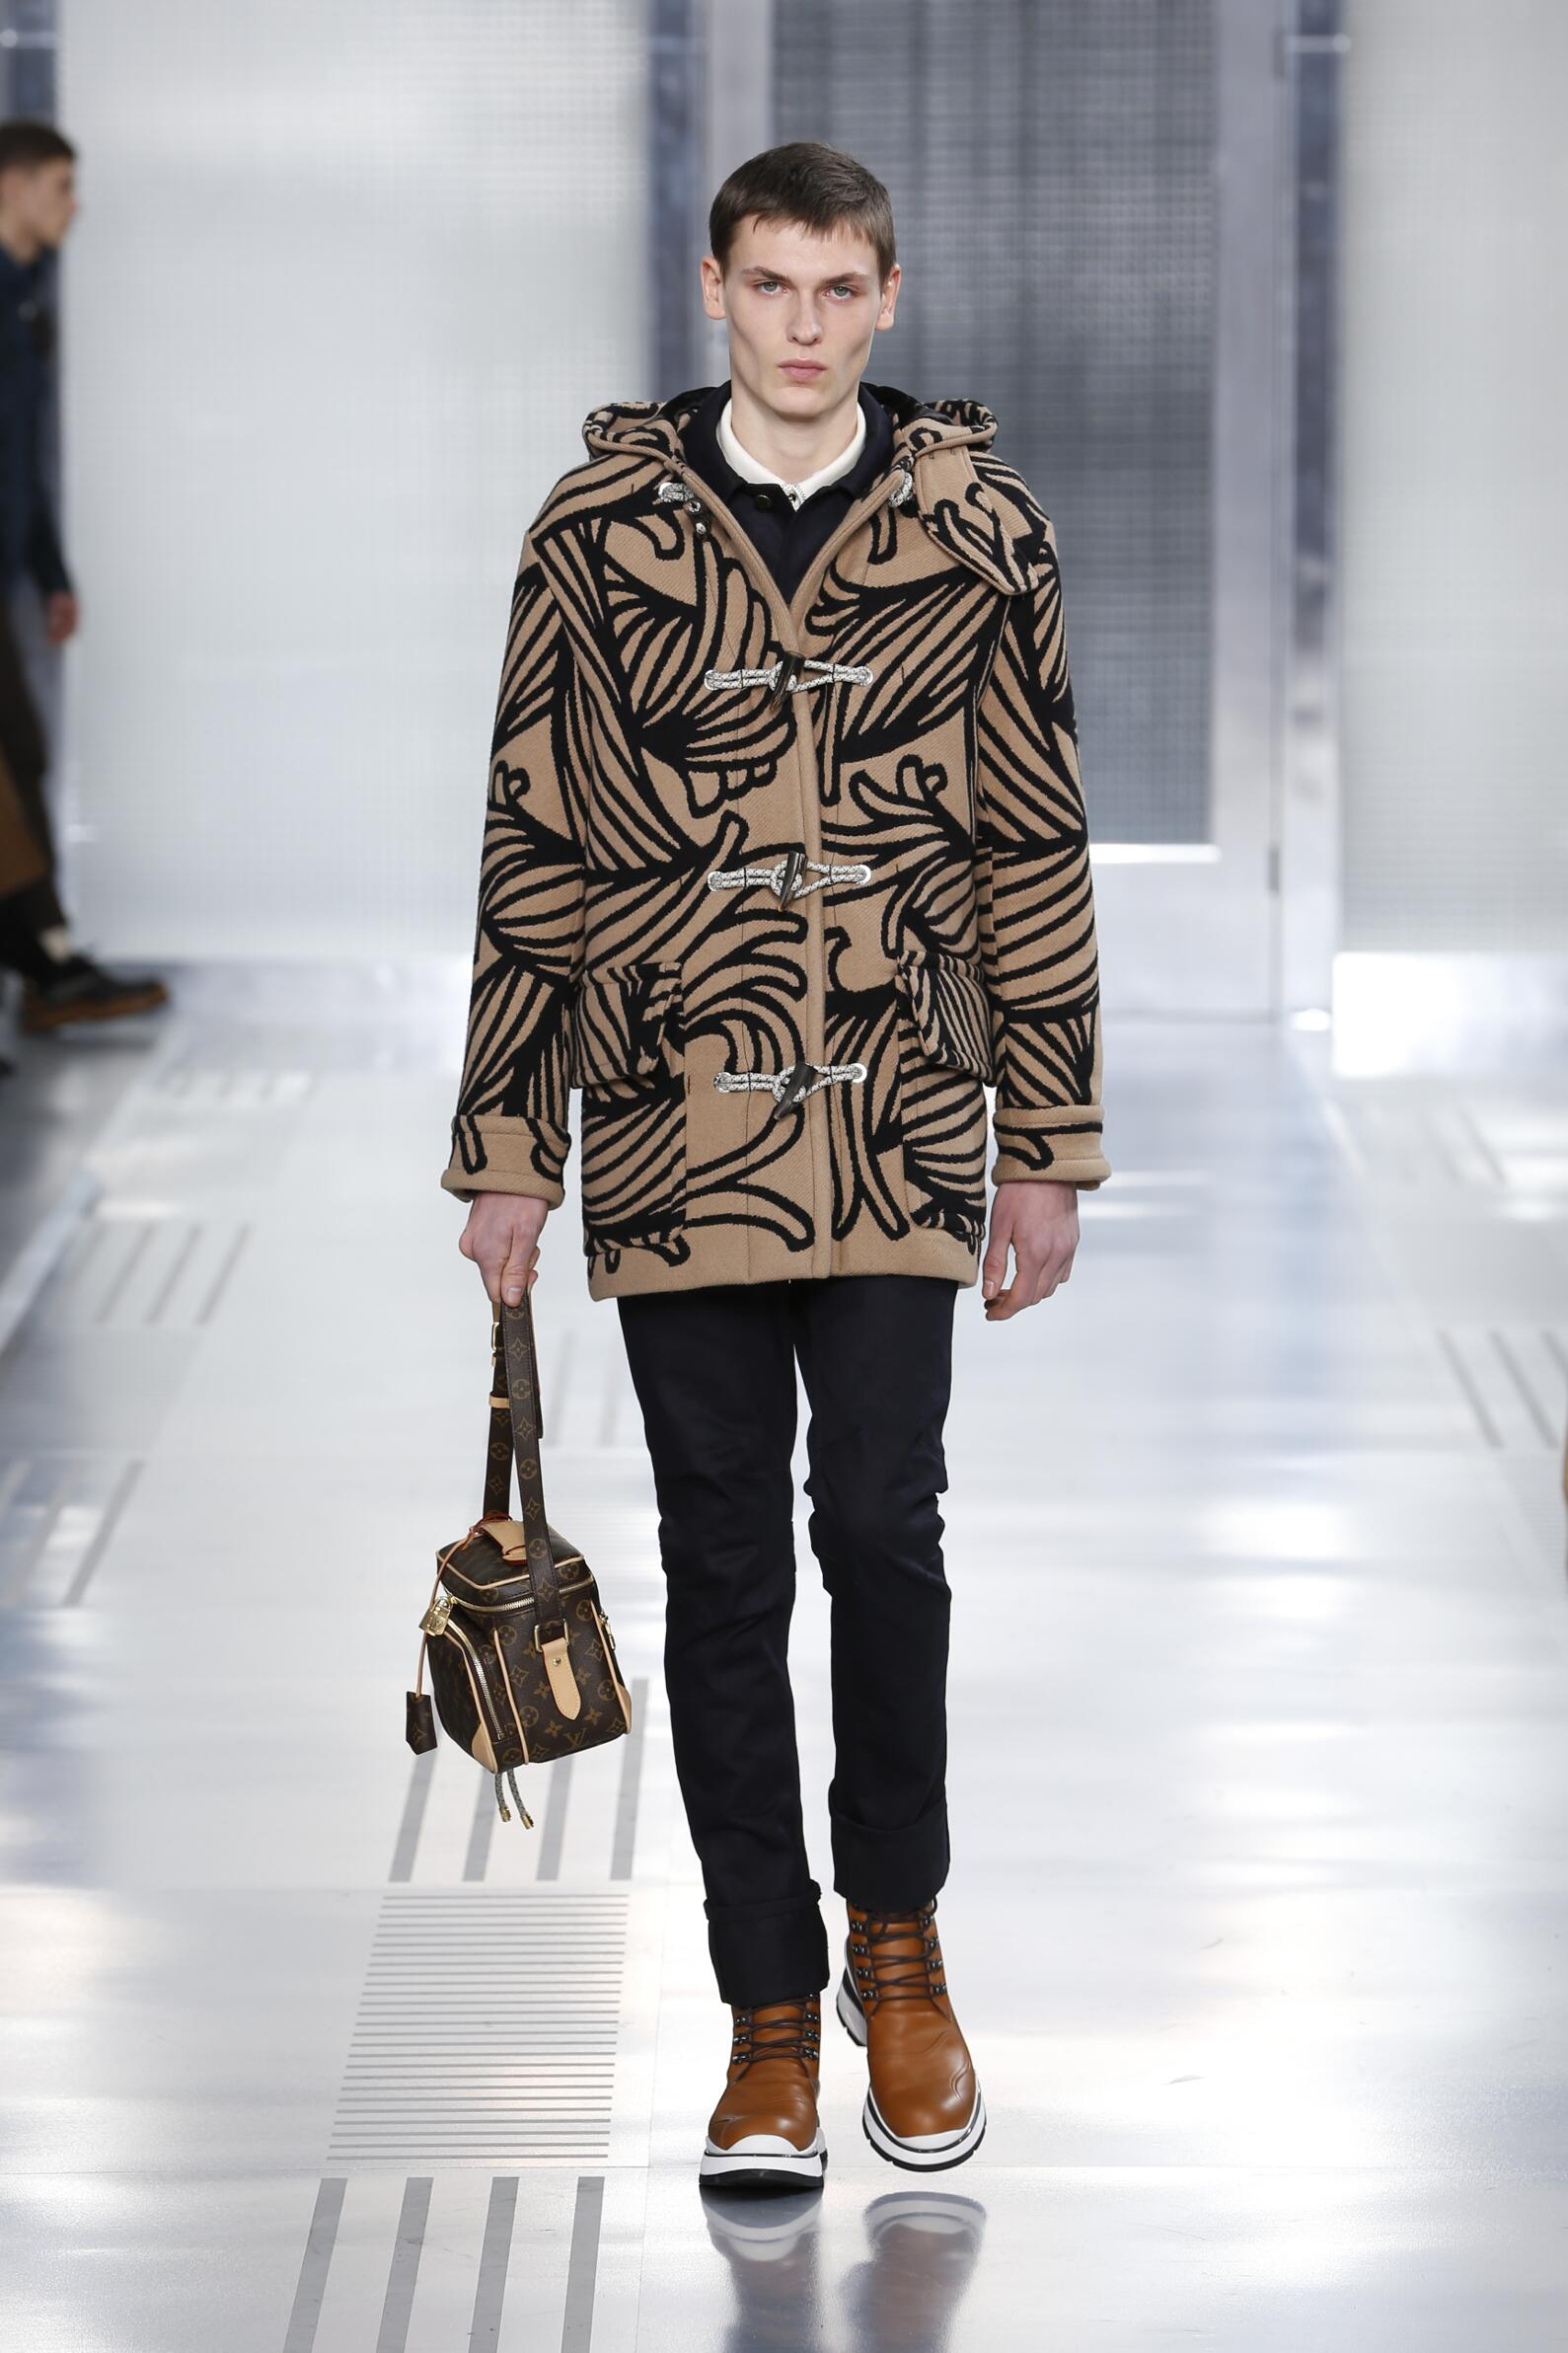 louis vuitton 2015. louis vuitton collection fashion show fw 2015 2016